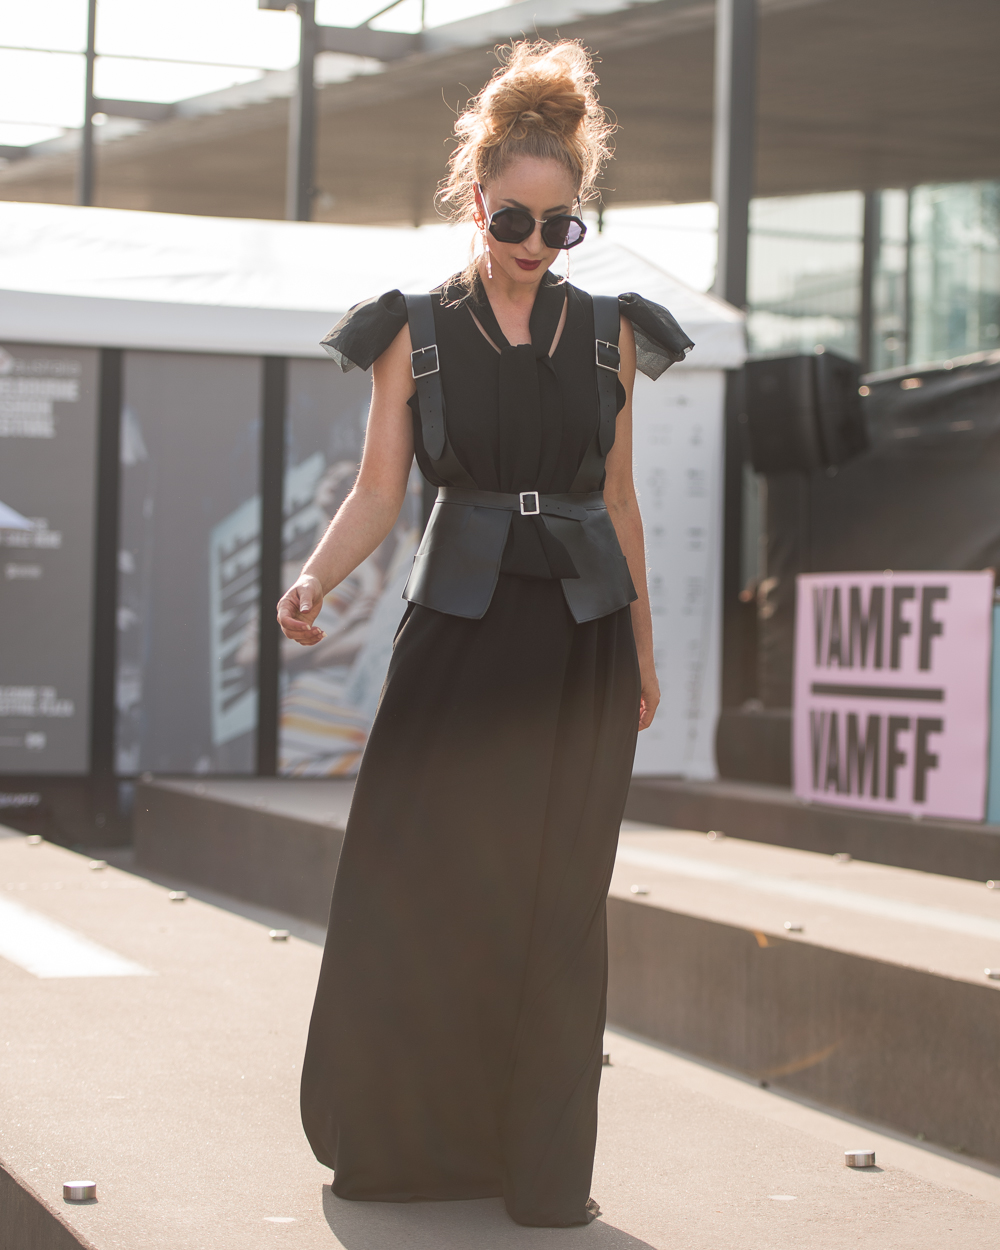 melbourne-street-style-vamff16-kwoo-10